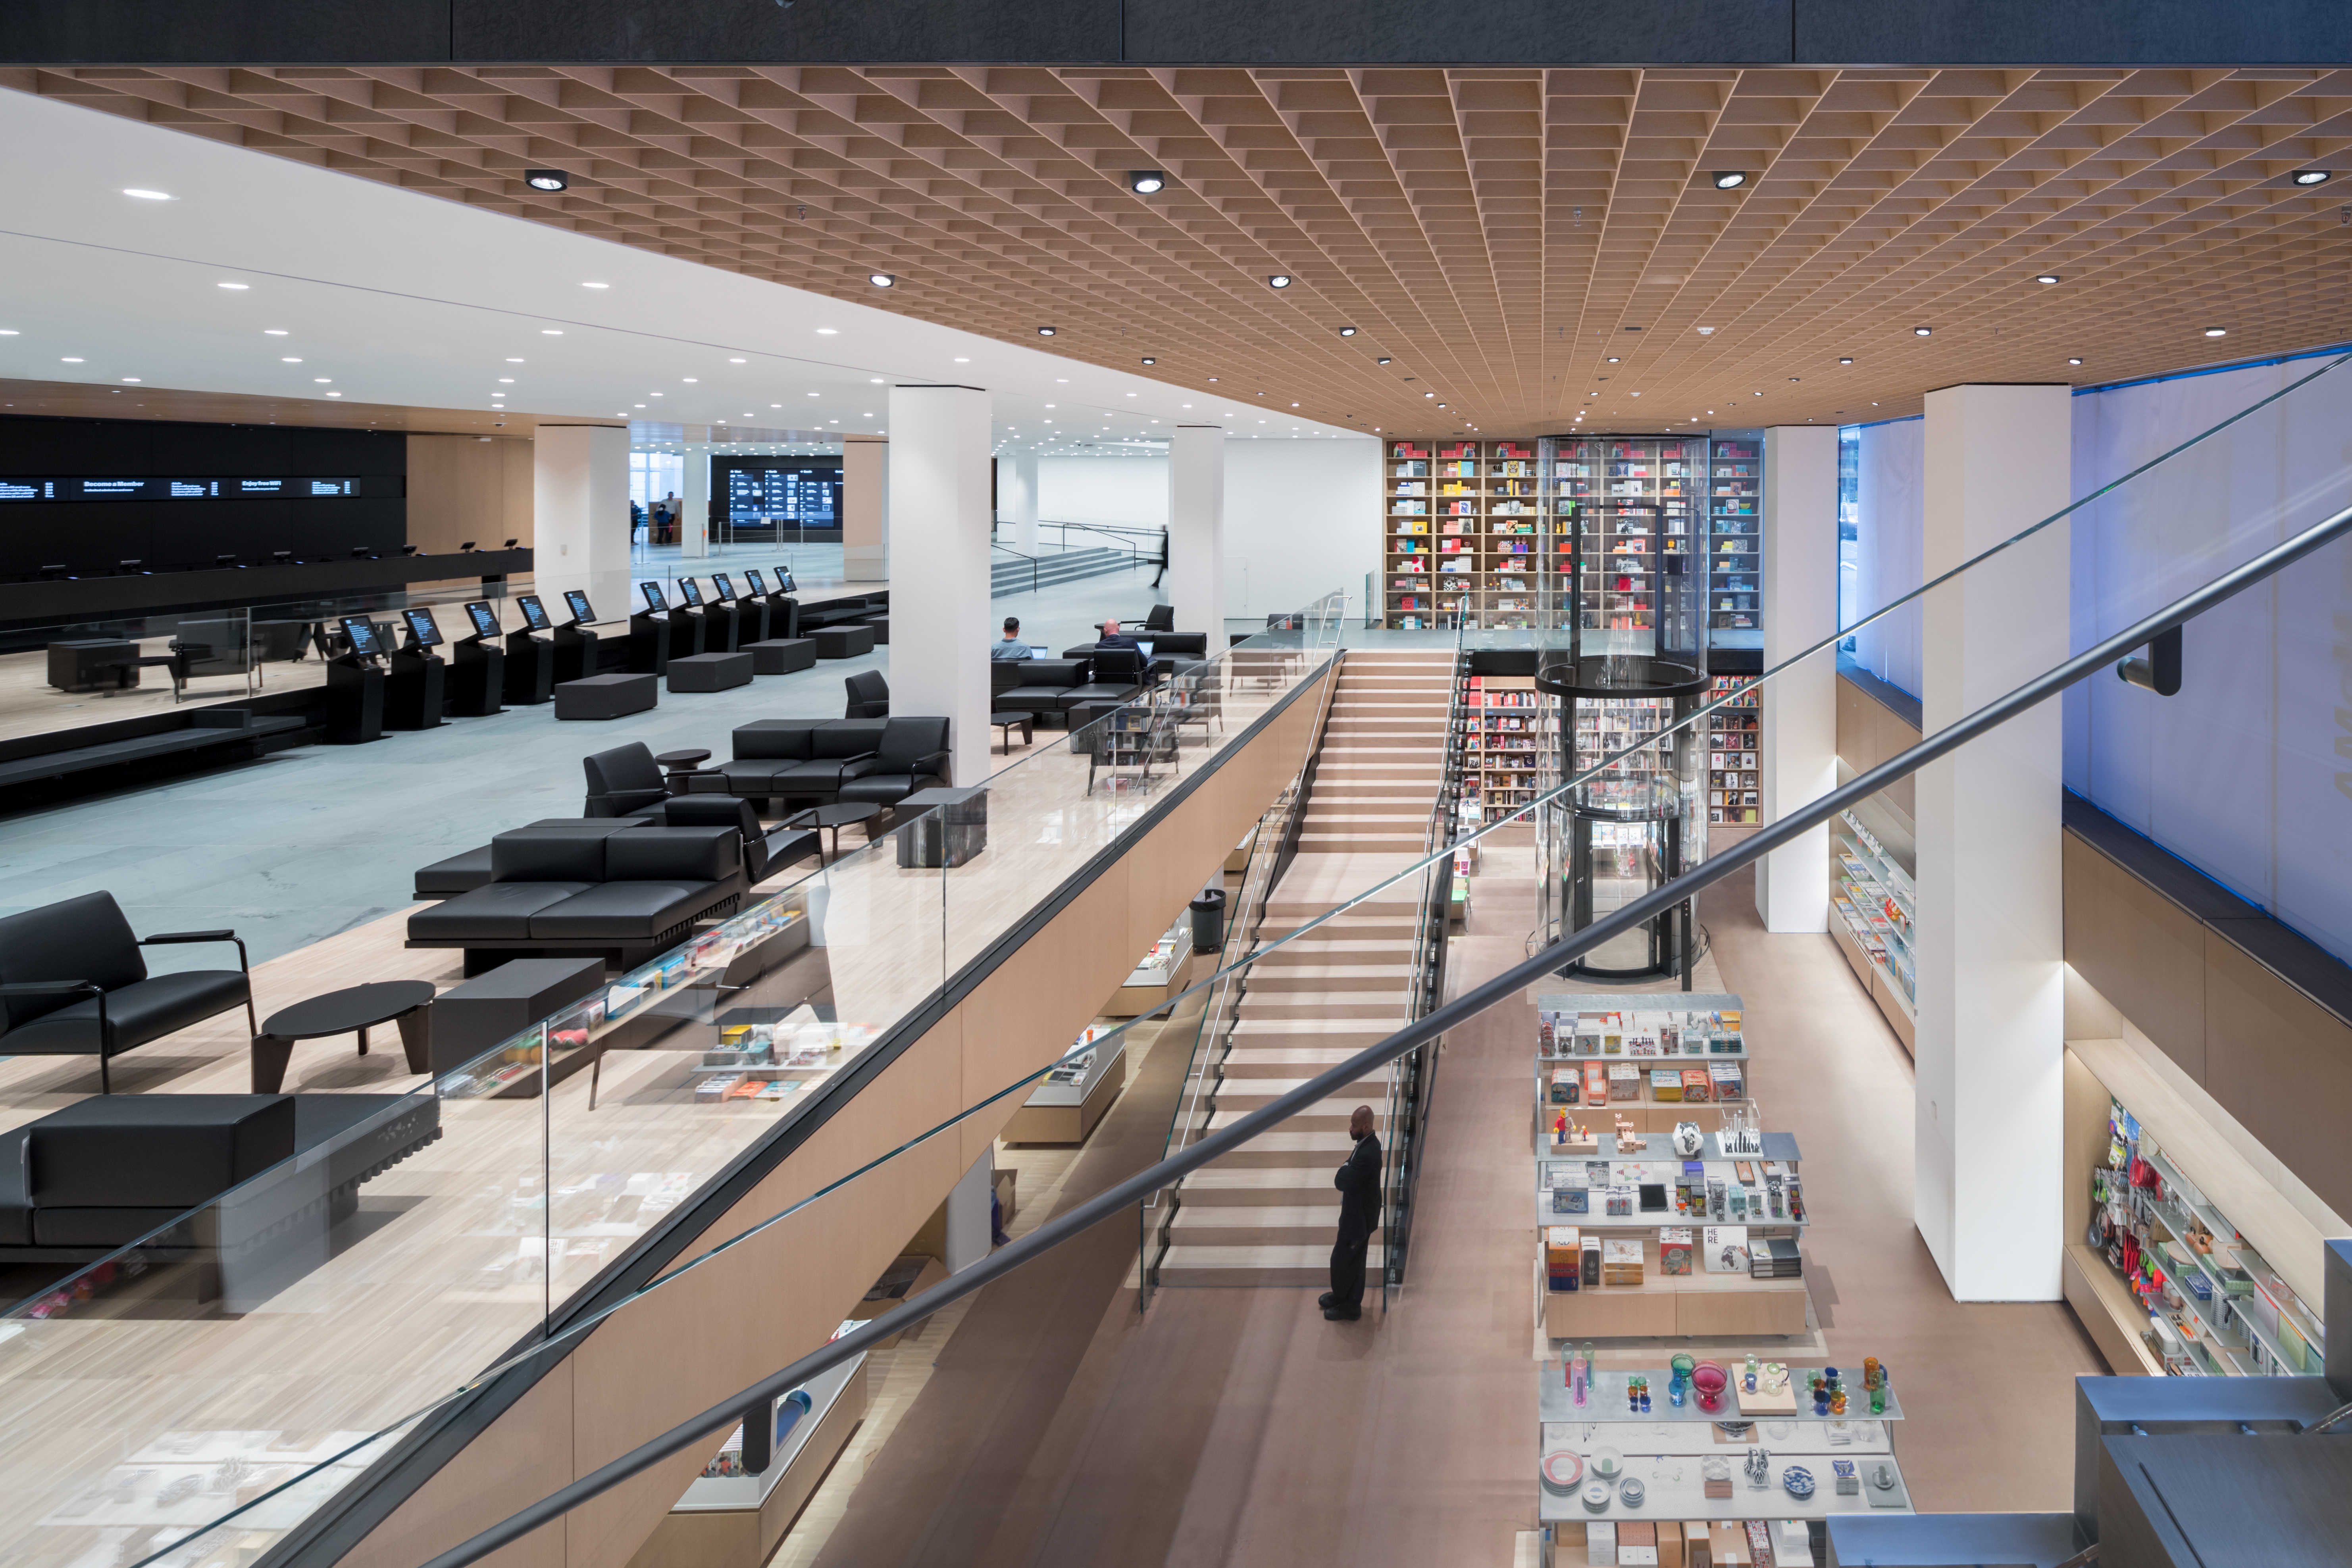 <p>MoMa Fase 2. Interior view of The Museum of Modern Art, Flagship Museum Store Beeld Iwan Baan. Courtesey of MoMa</p>